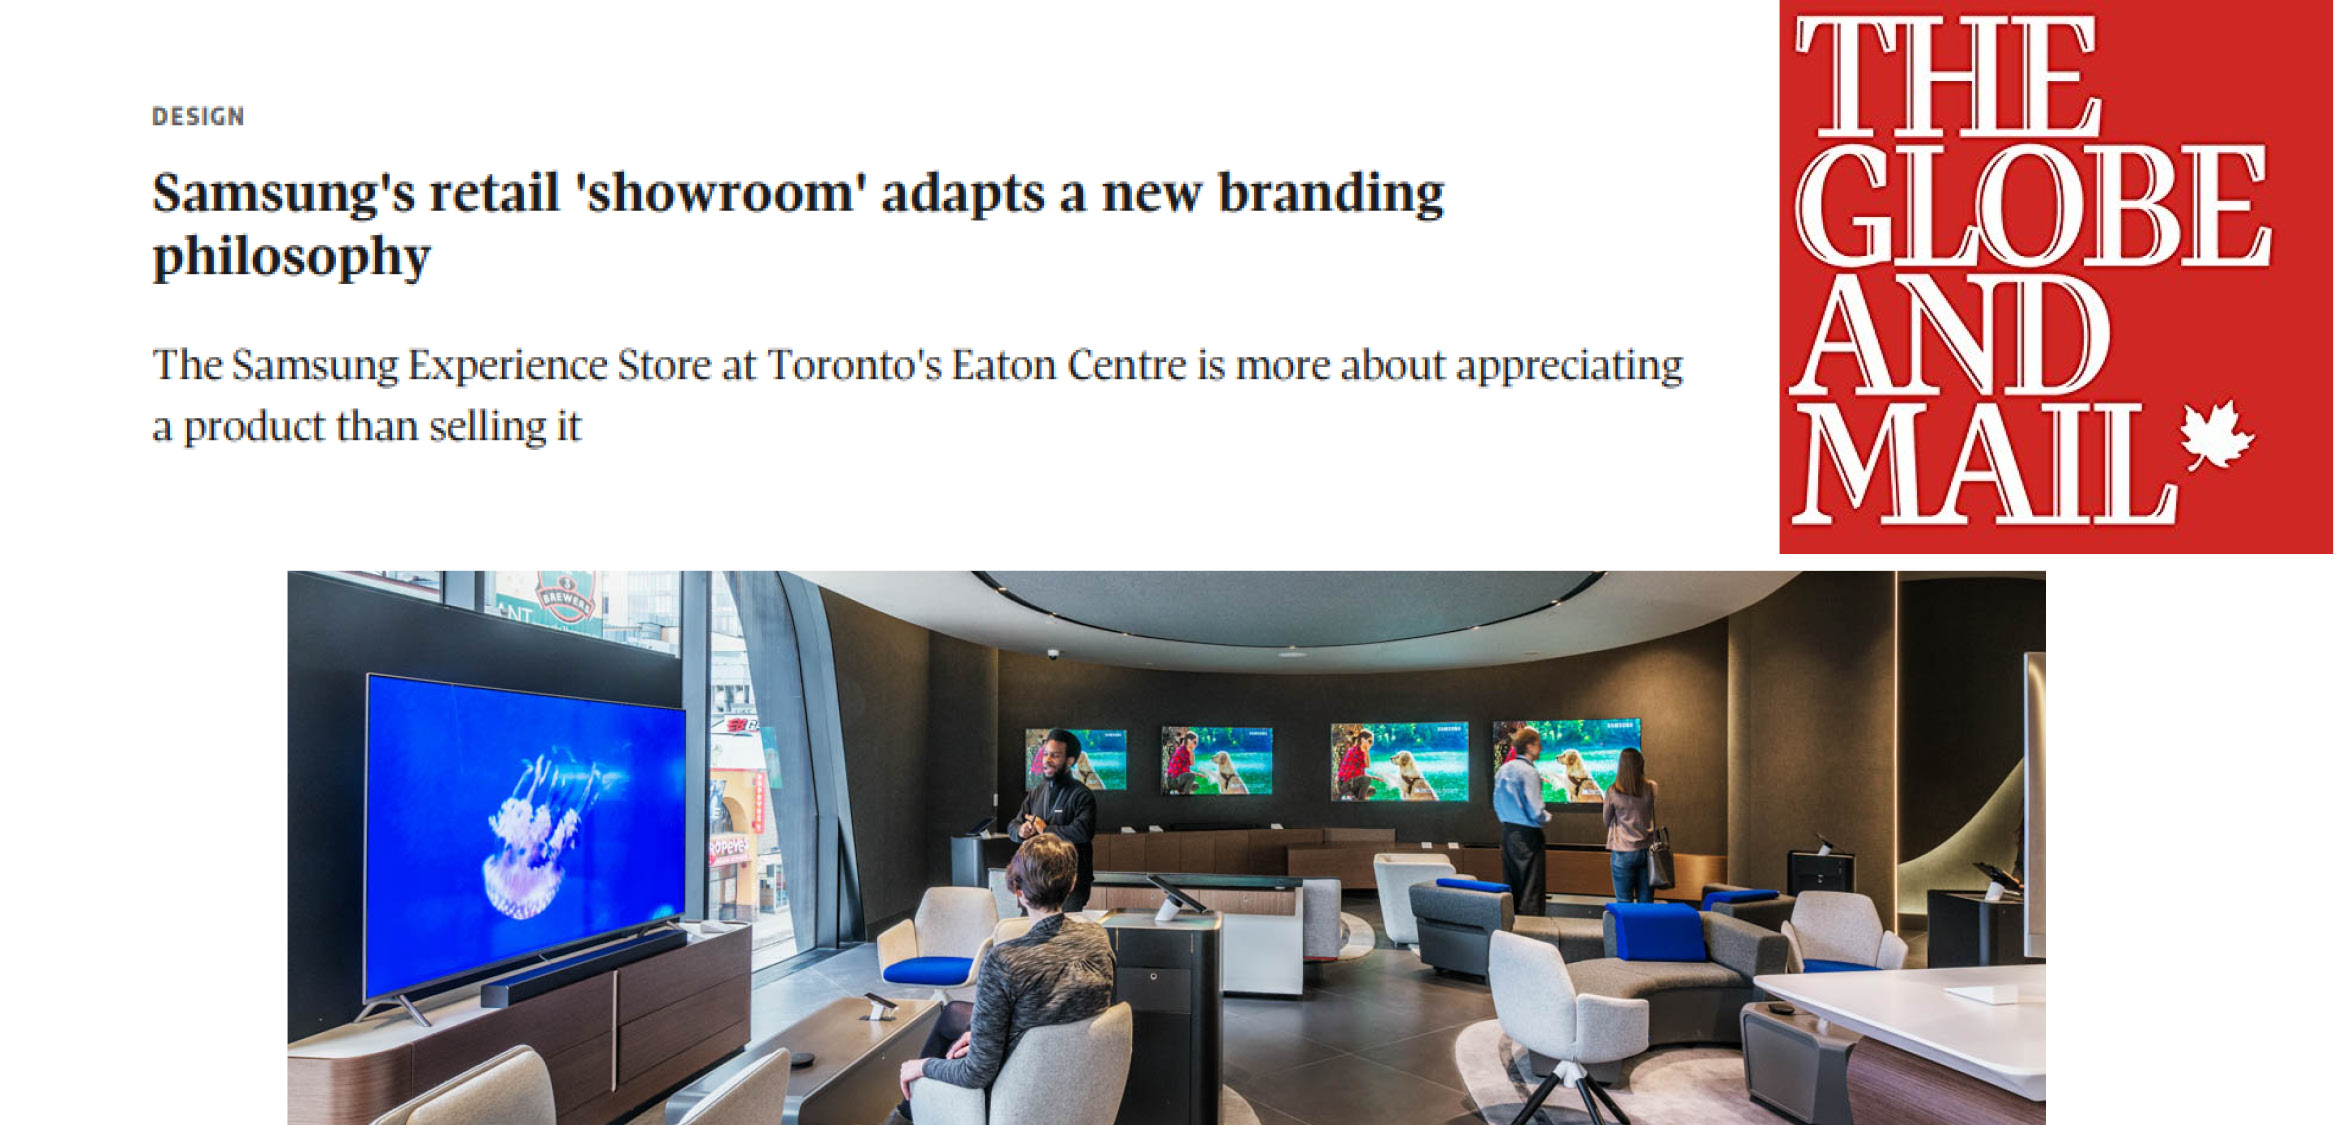 """the headline """"Samsung's retail 'showroom' adapts a new branding philosophy"""" along with the Globe and Mail logo and people looking at TVs in the Samsung store"""